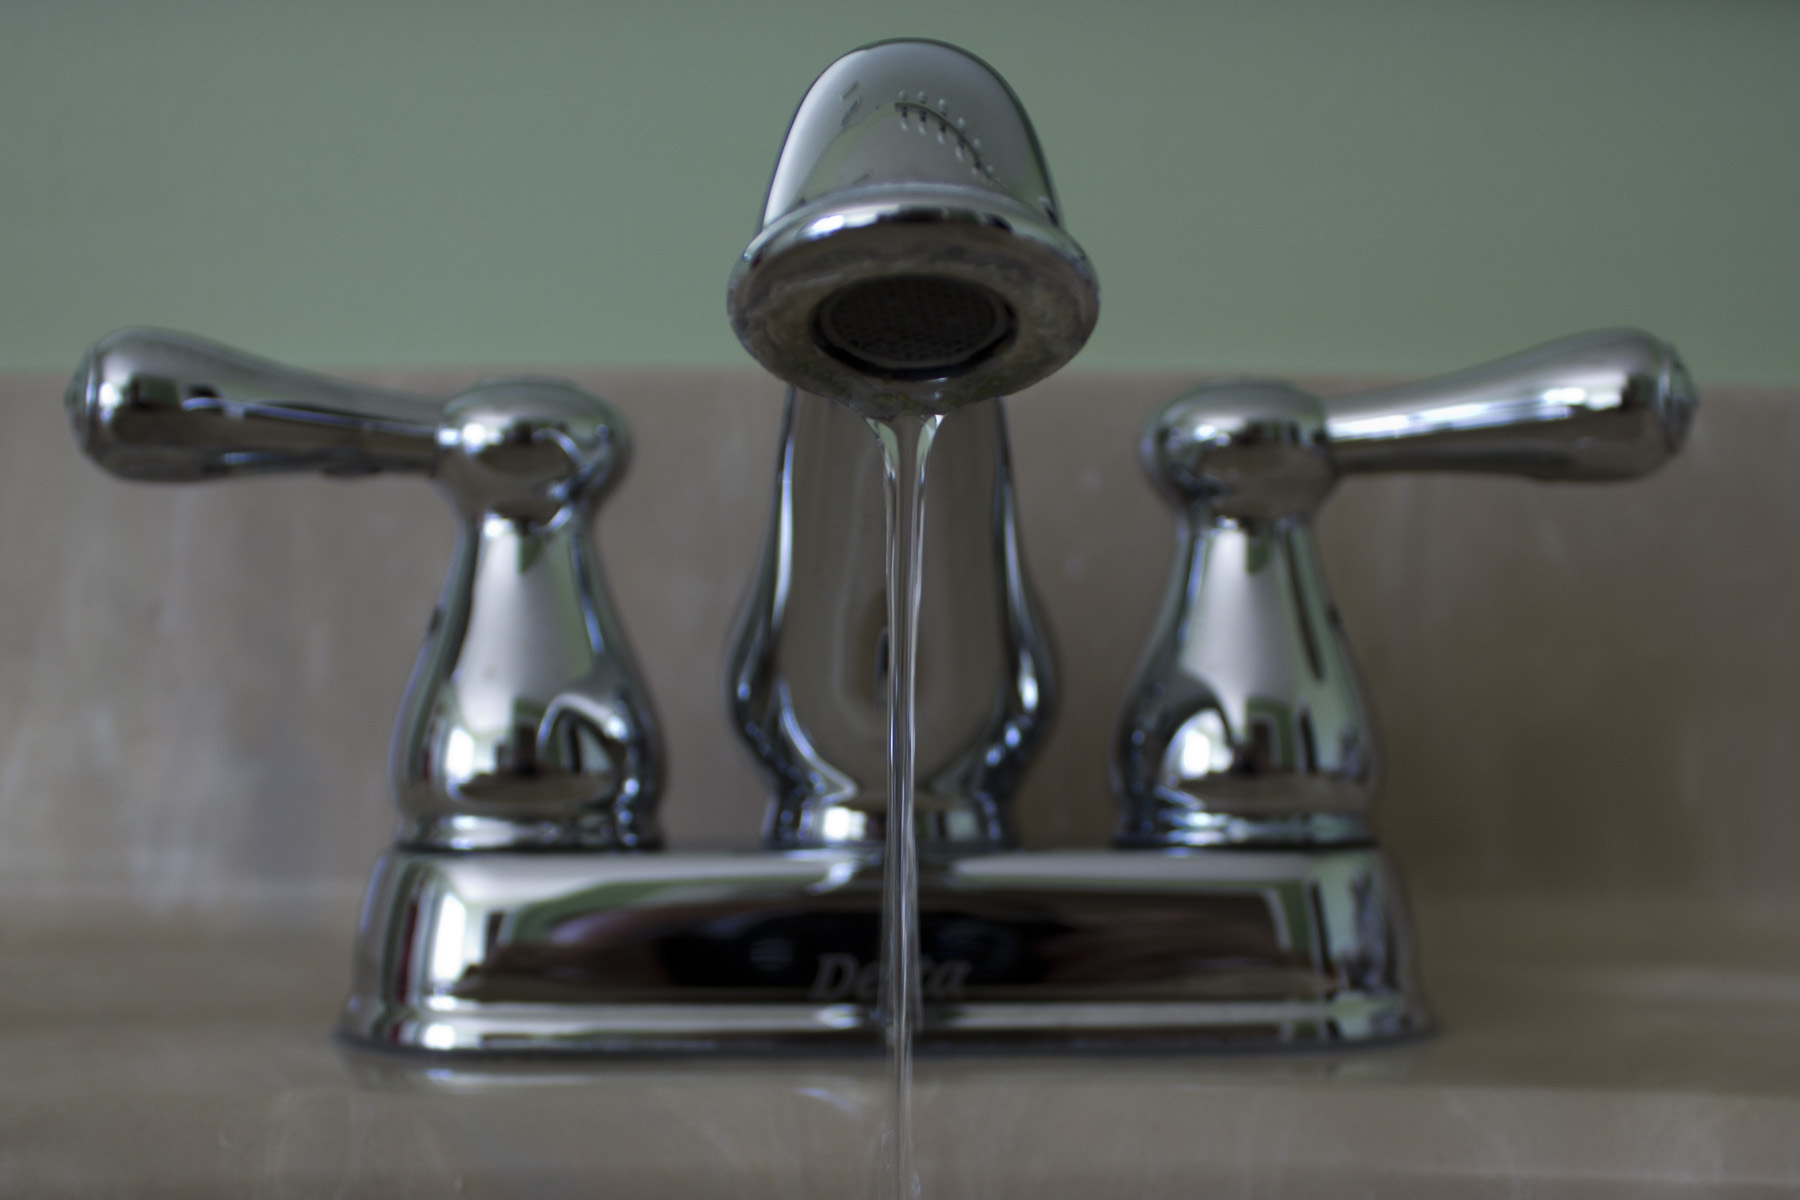 Faucet with tap water